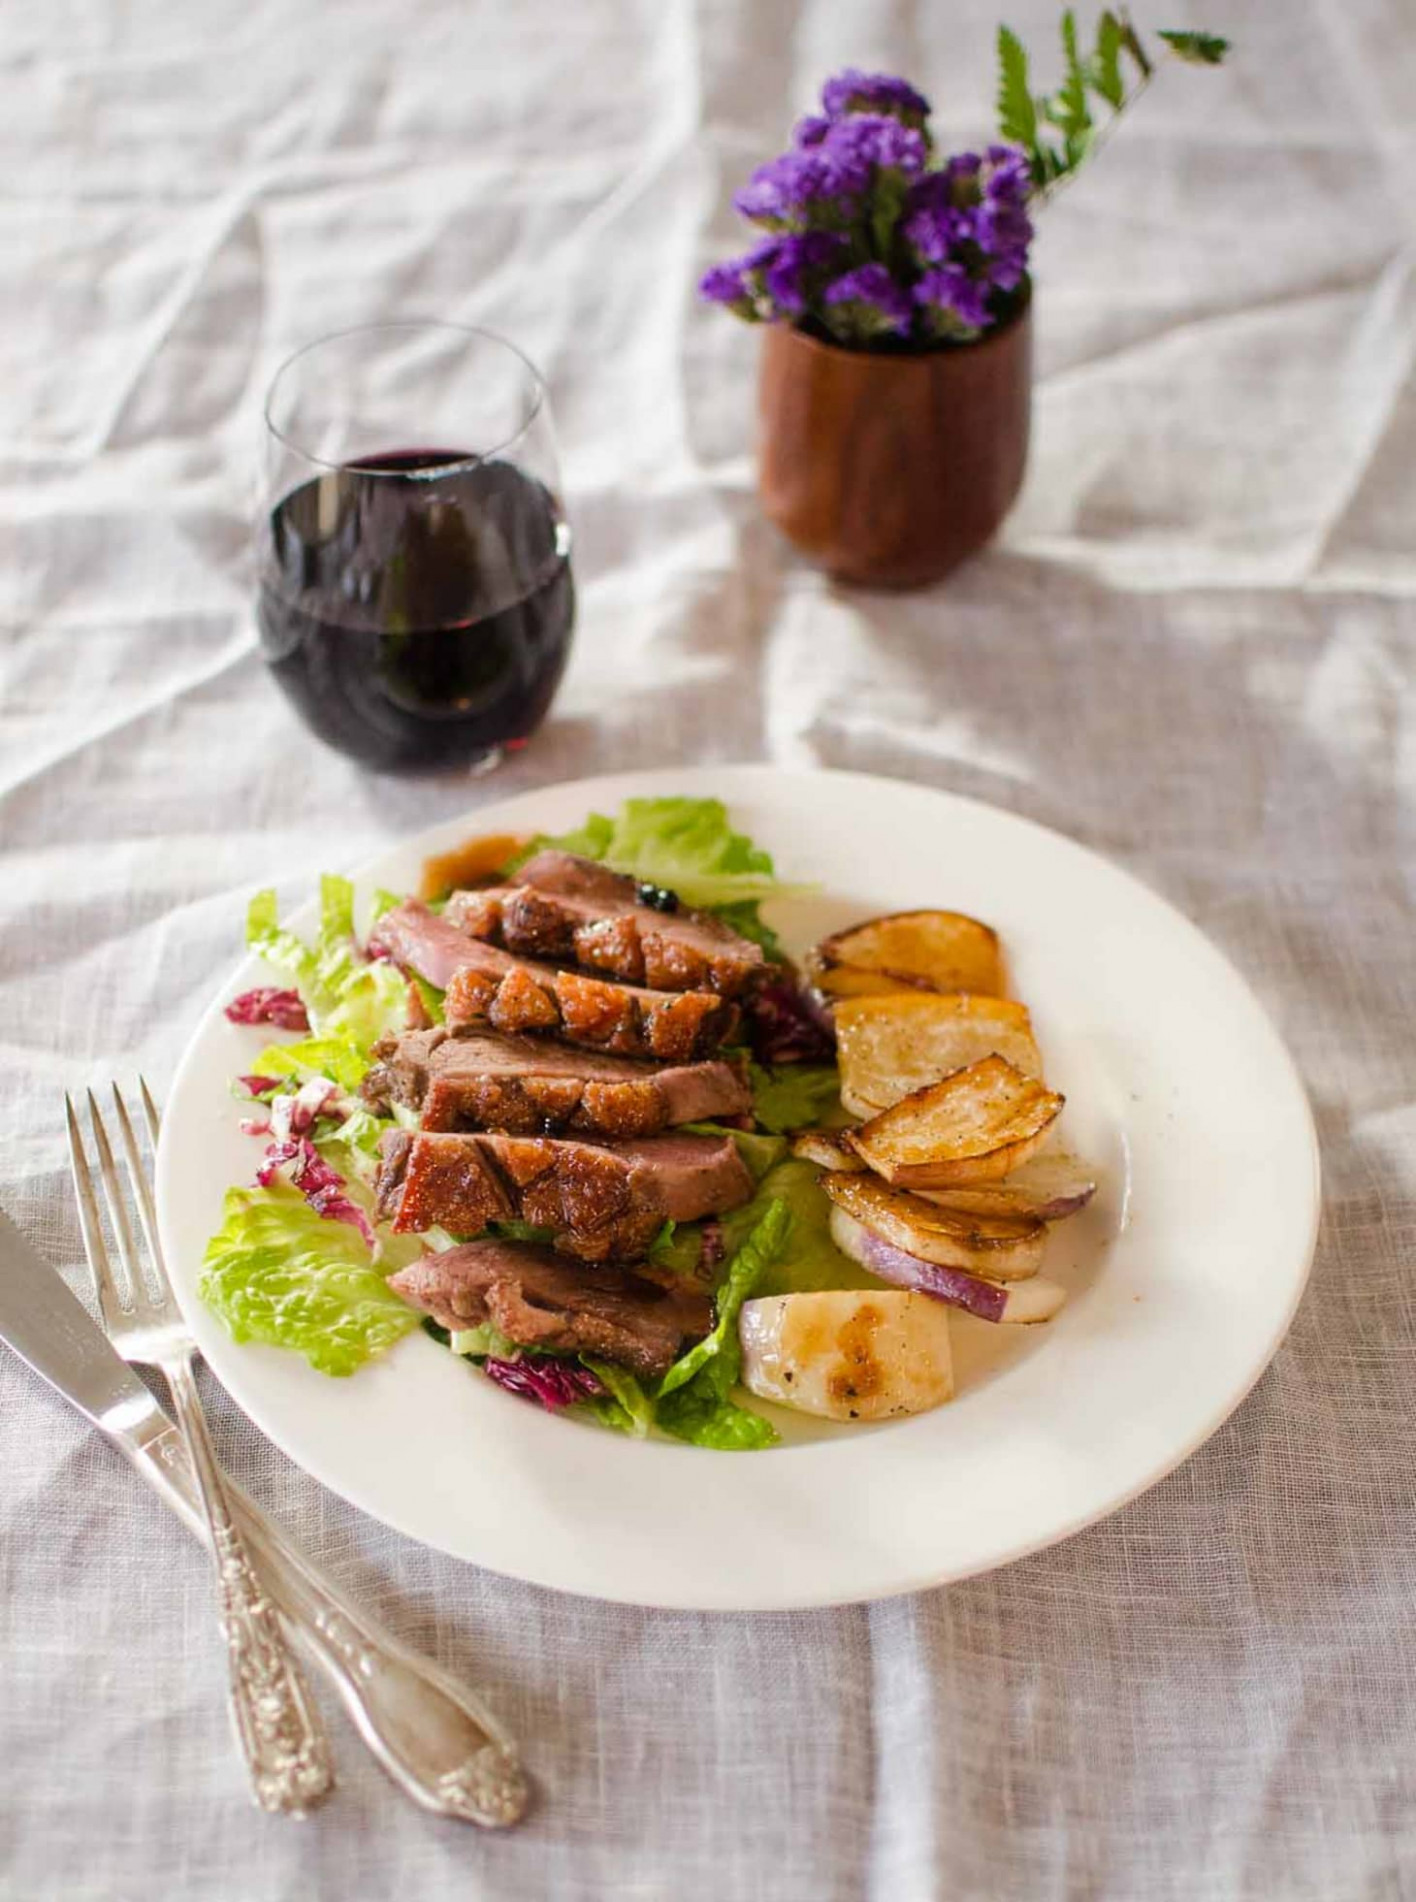 Romantic Dinner Ideas - Best Meals for Two at Home | Kitchn - recipes to make at home for dinner